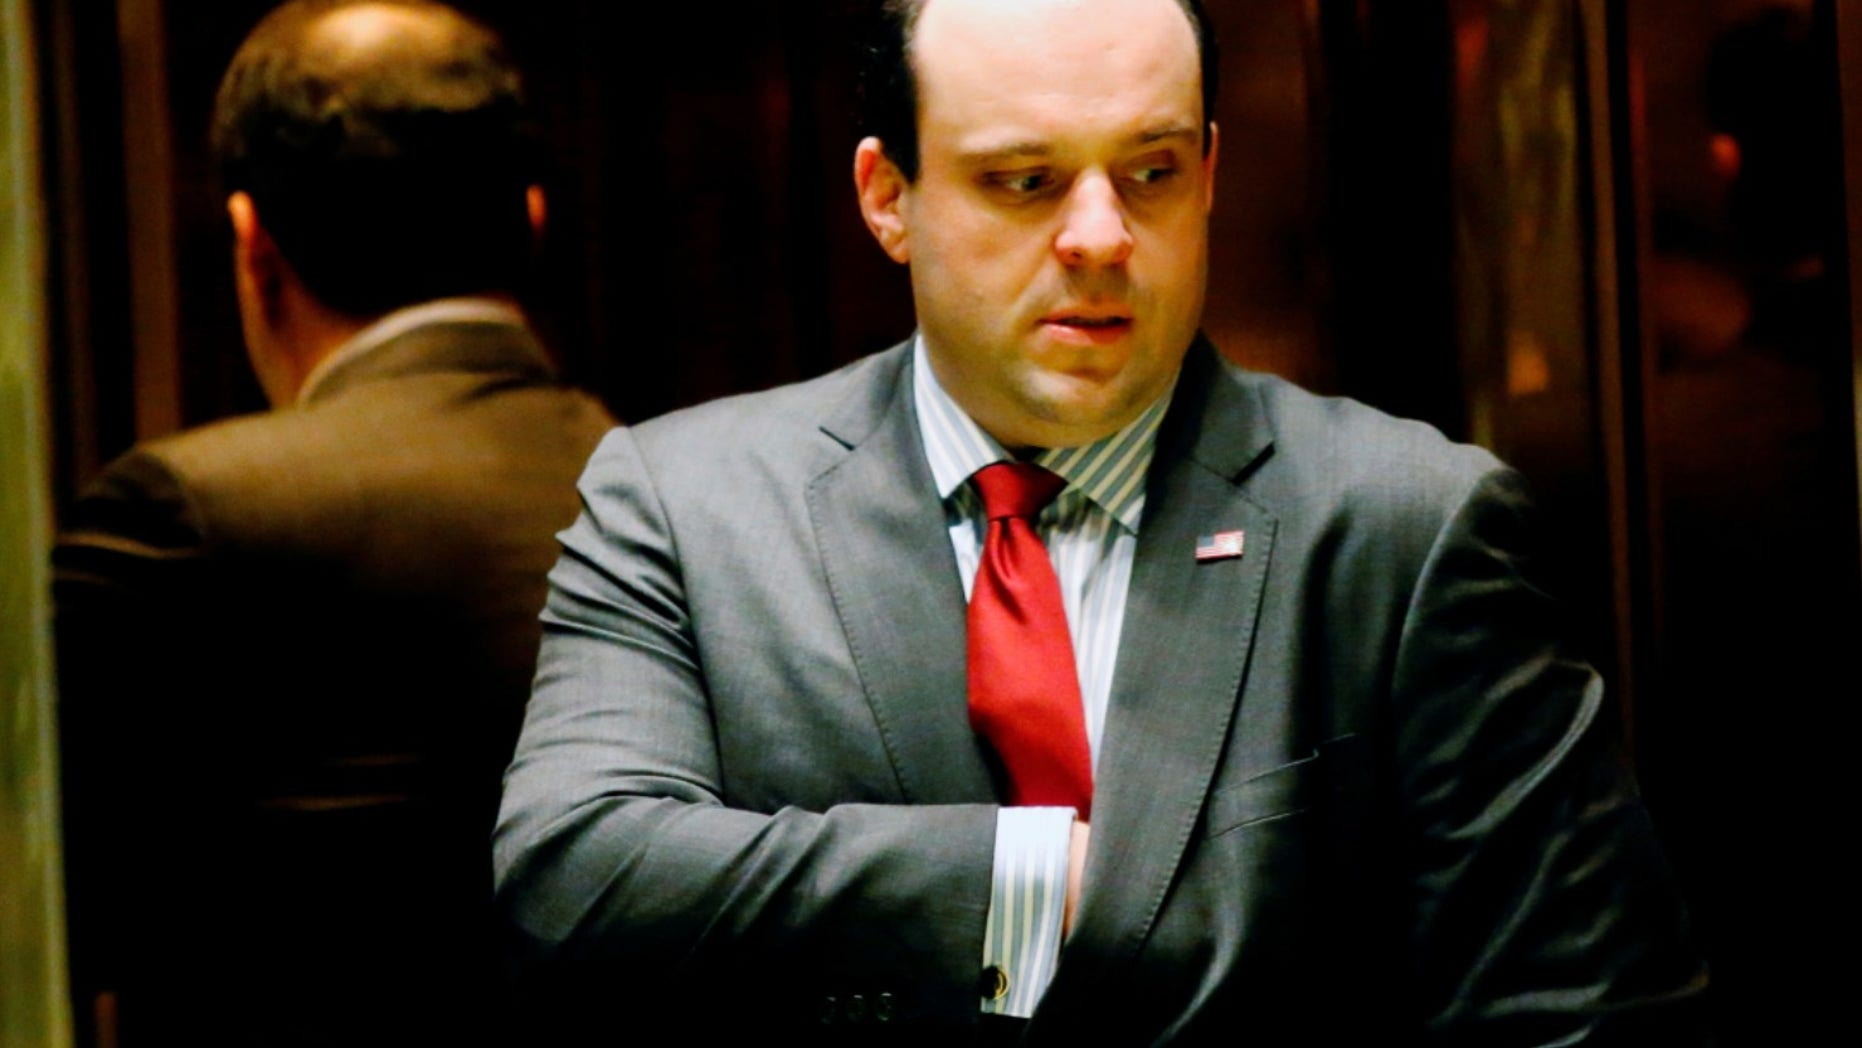 Former White House press officer Boris Epshteyn has received a list of questions from the House Intelligence Committee as part of the probe into Russian interference in the 2016 presidential election, according to a new report.